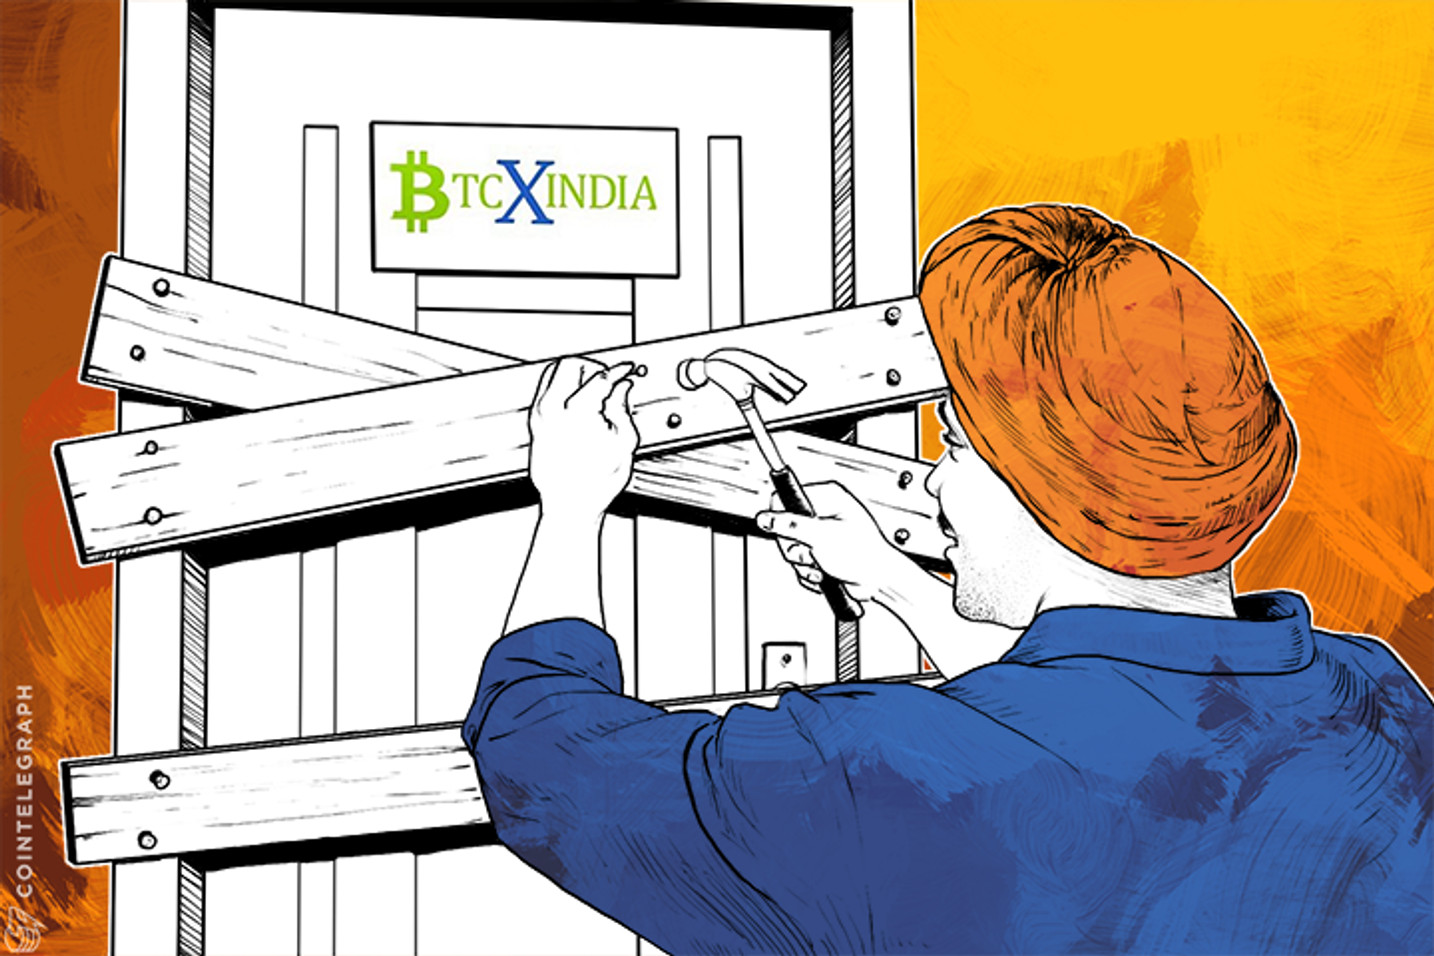 India's Bitcoin Exchange BTCXIndia to Close Following Loss of Banking Support